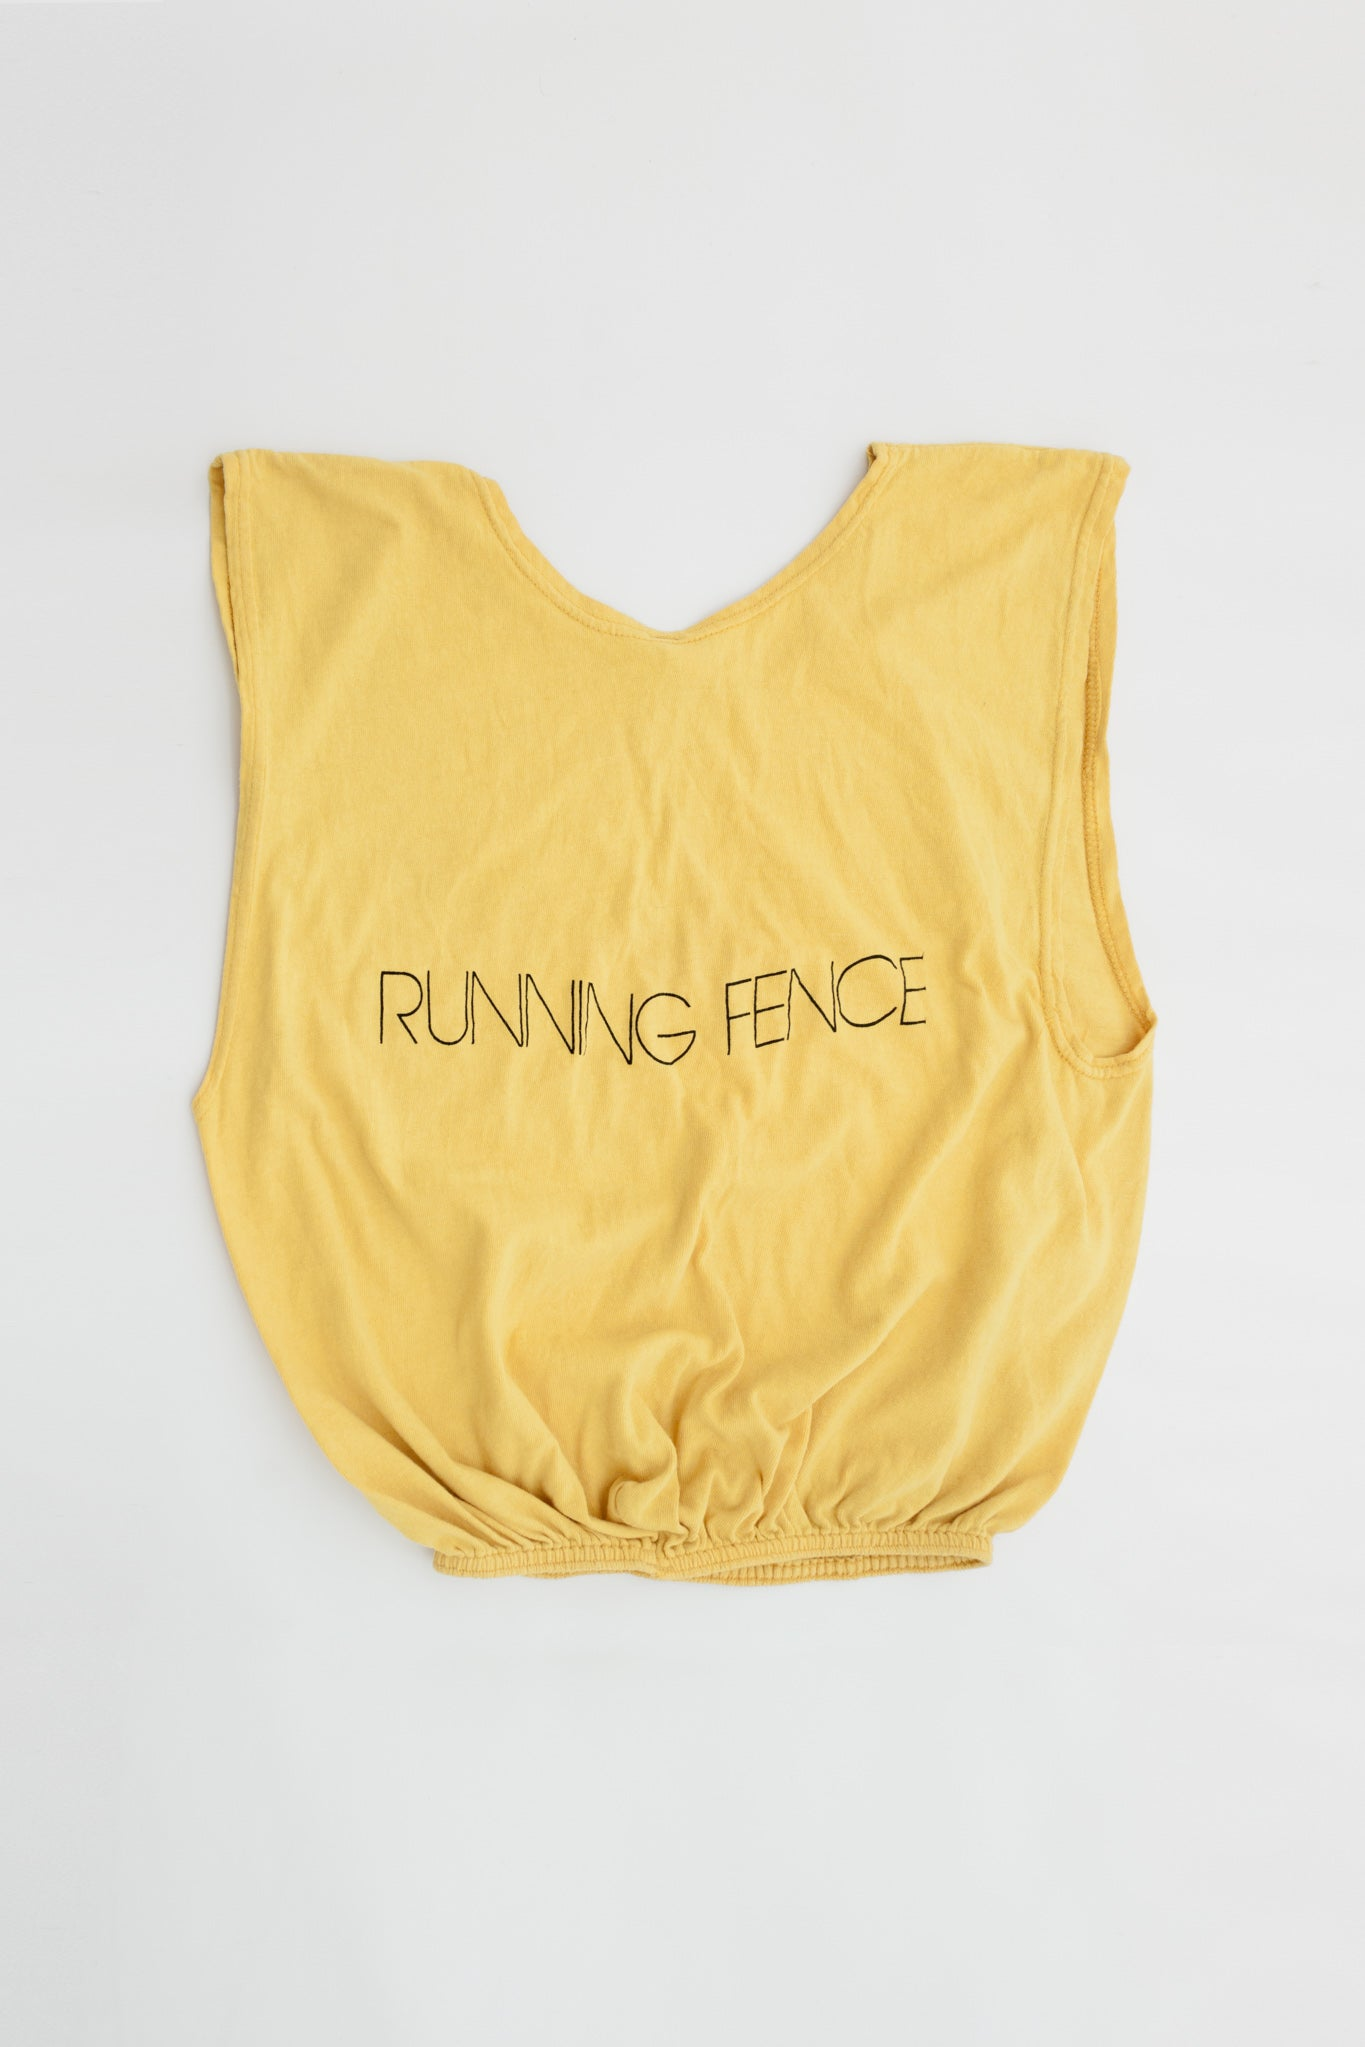 [Bootleg t-shirt from Running fenceproject].California, 1976. - Christo